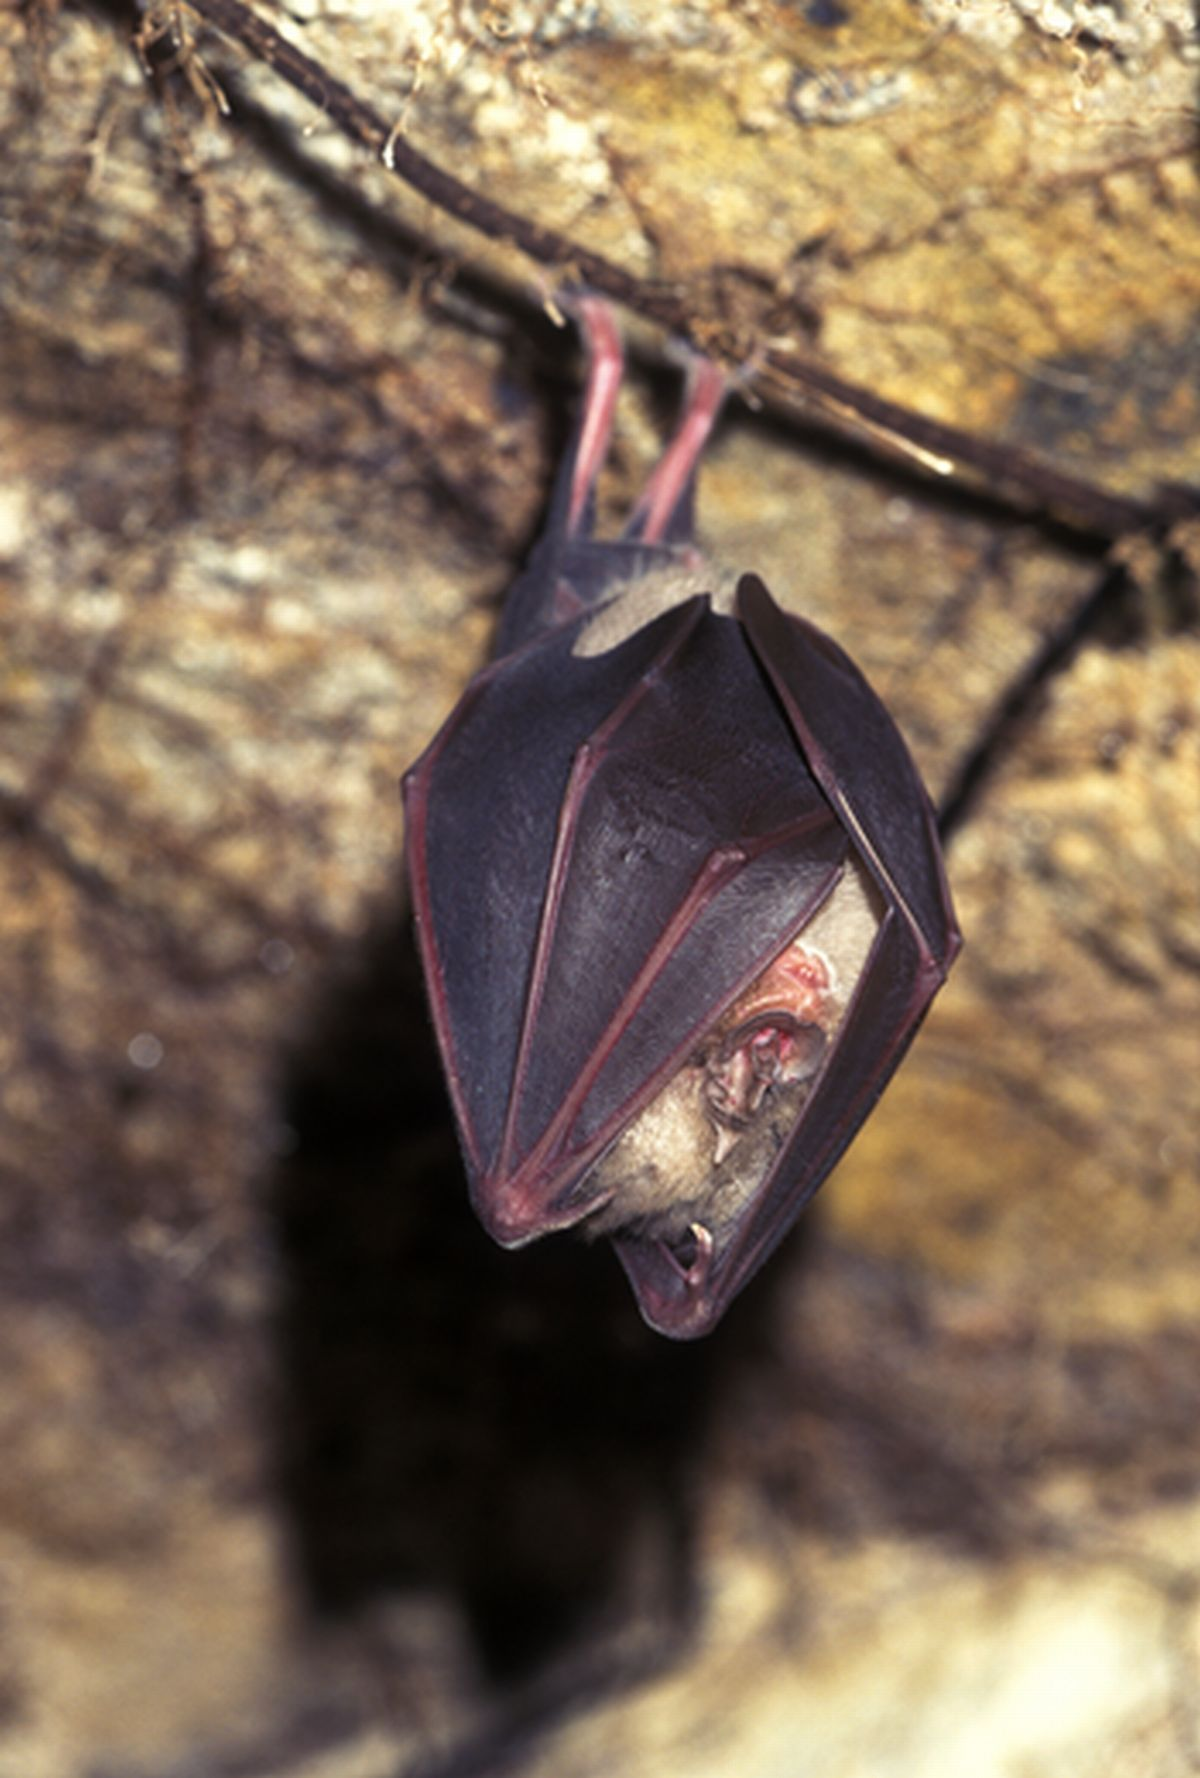 Greater Horseshoe Bat Project wins Heritage Lottery Fund support